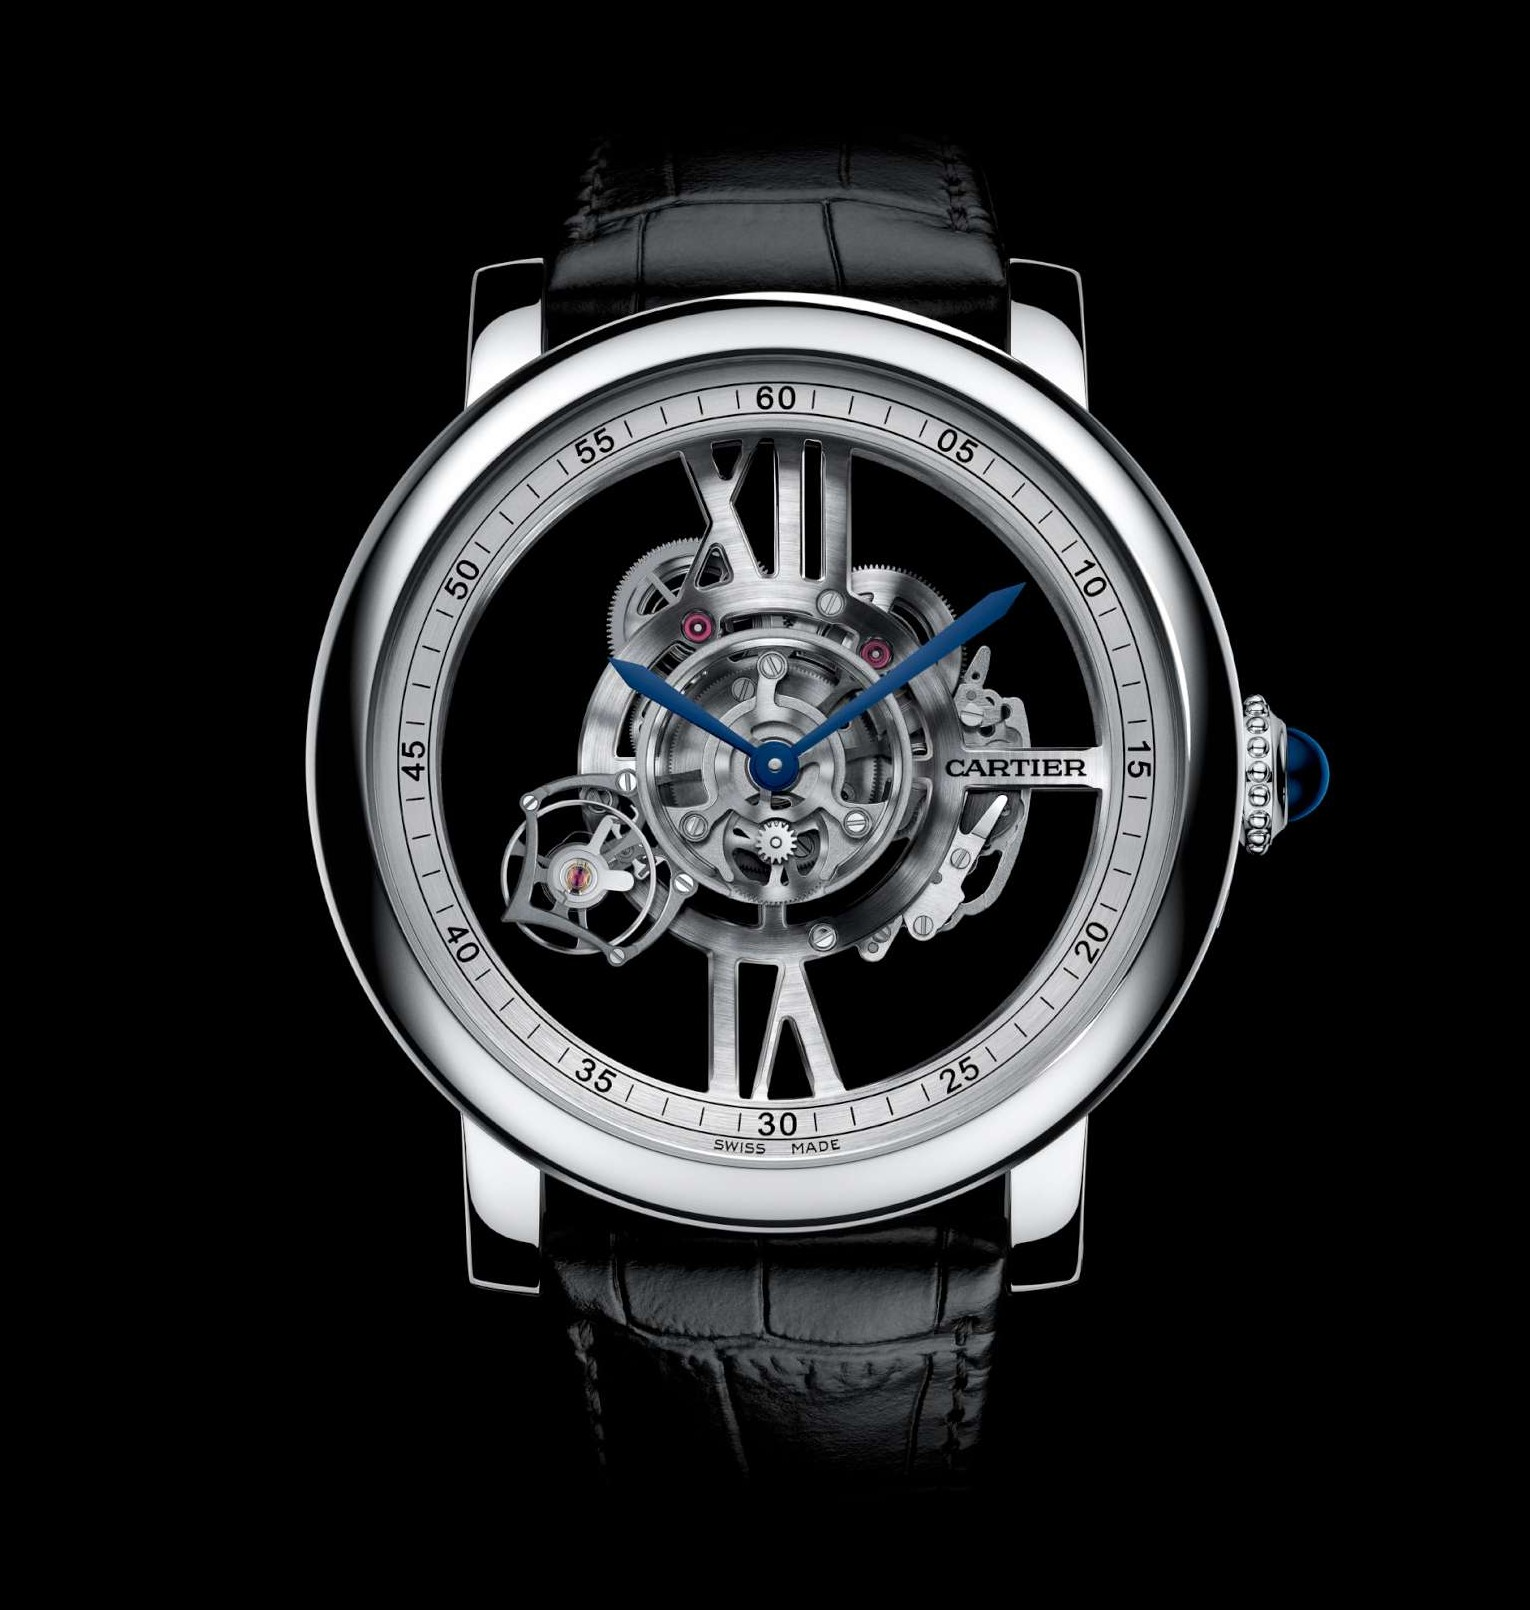 01_ASTROTOURBILLON_SKELETON_FACE-2000